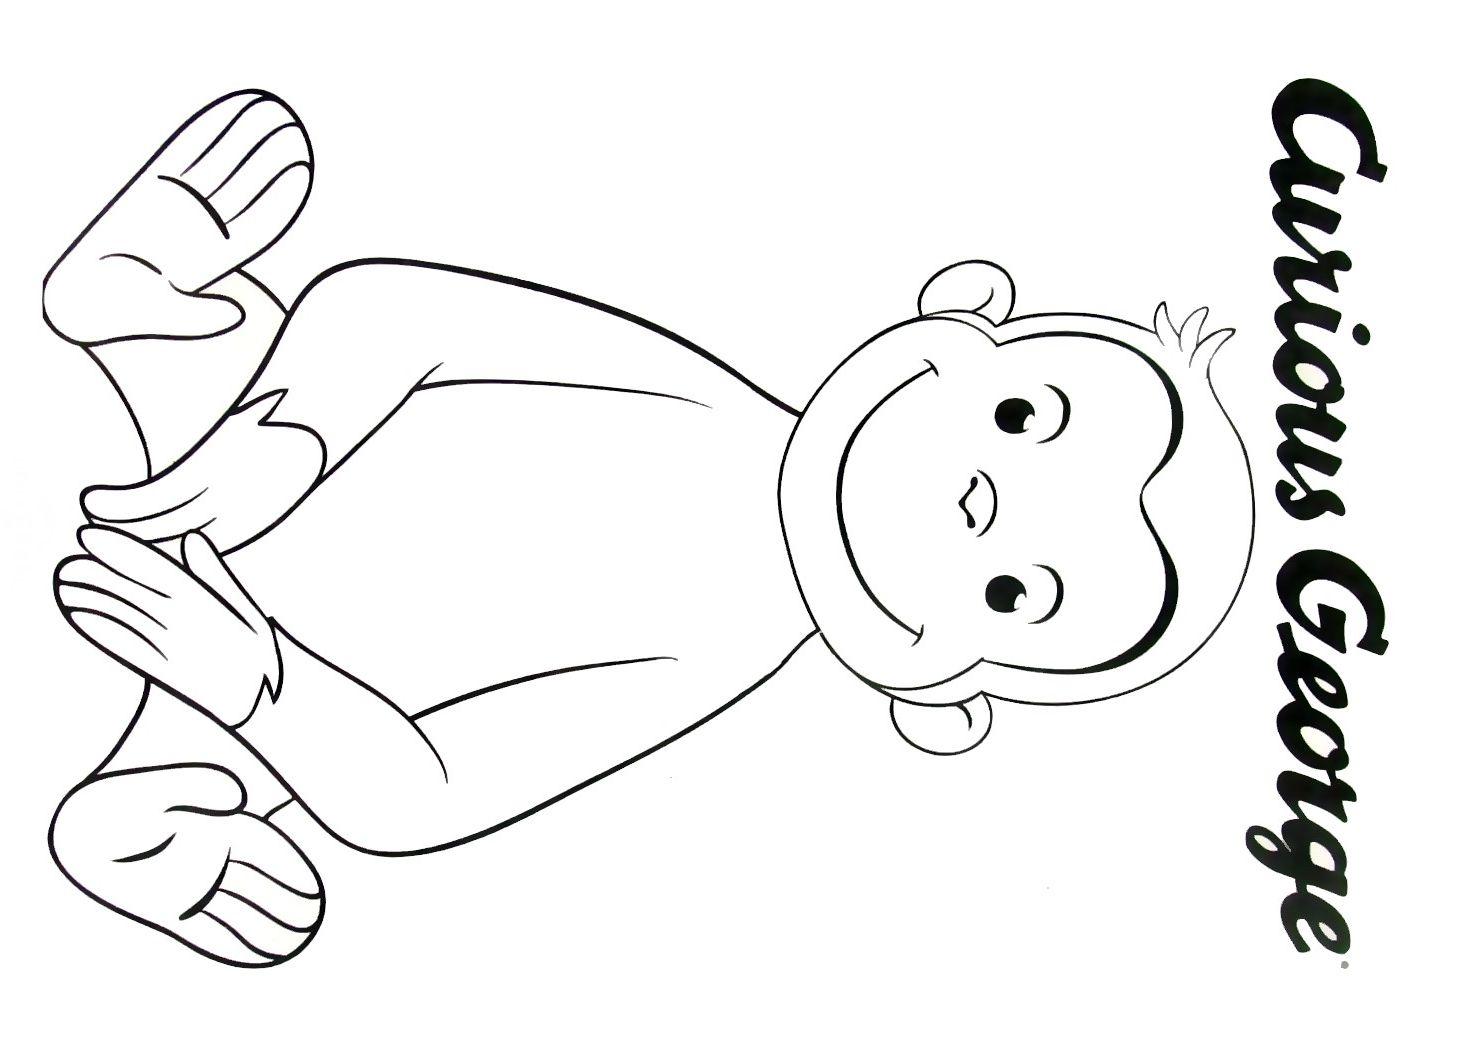 Curious Gee Coloring Book Page